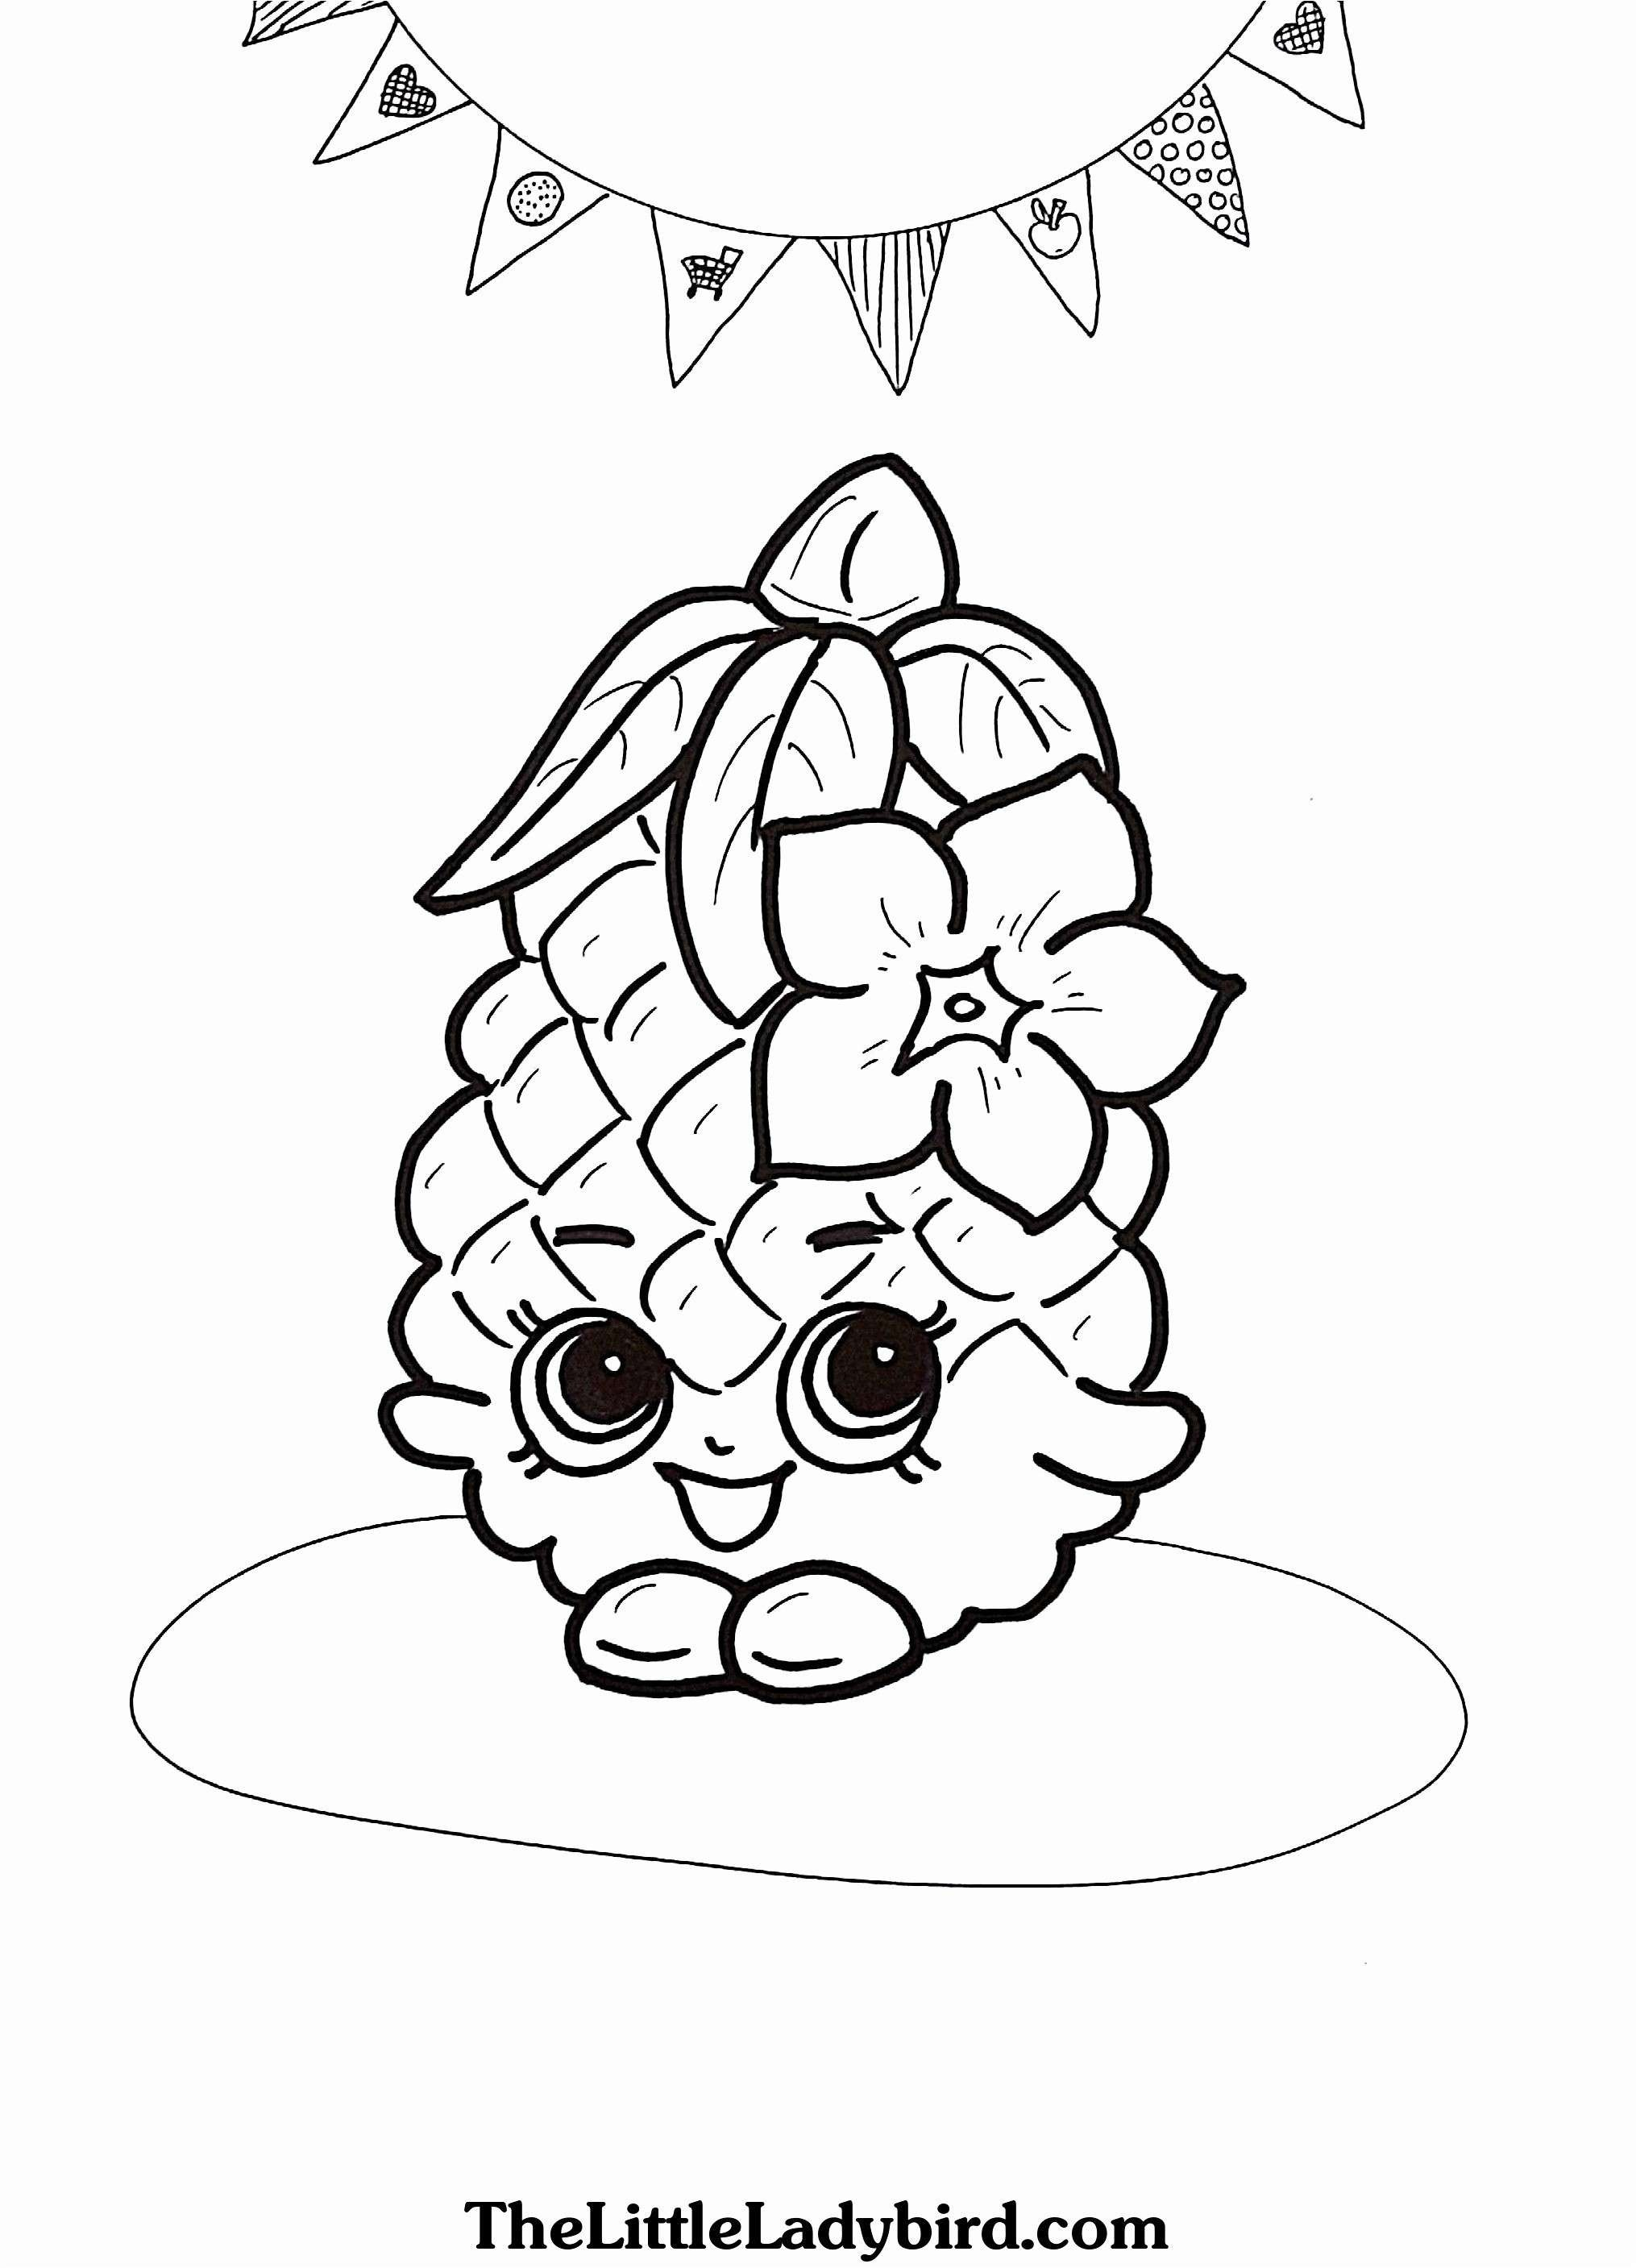 Coloring Pages Christmas Tree  to Print 12c - To print for your project